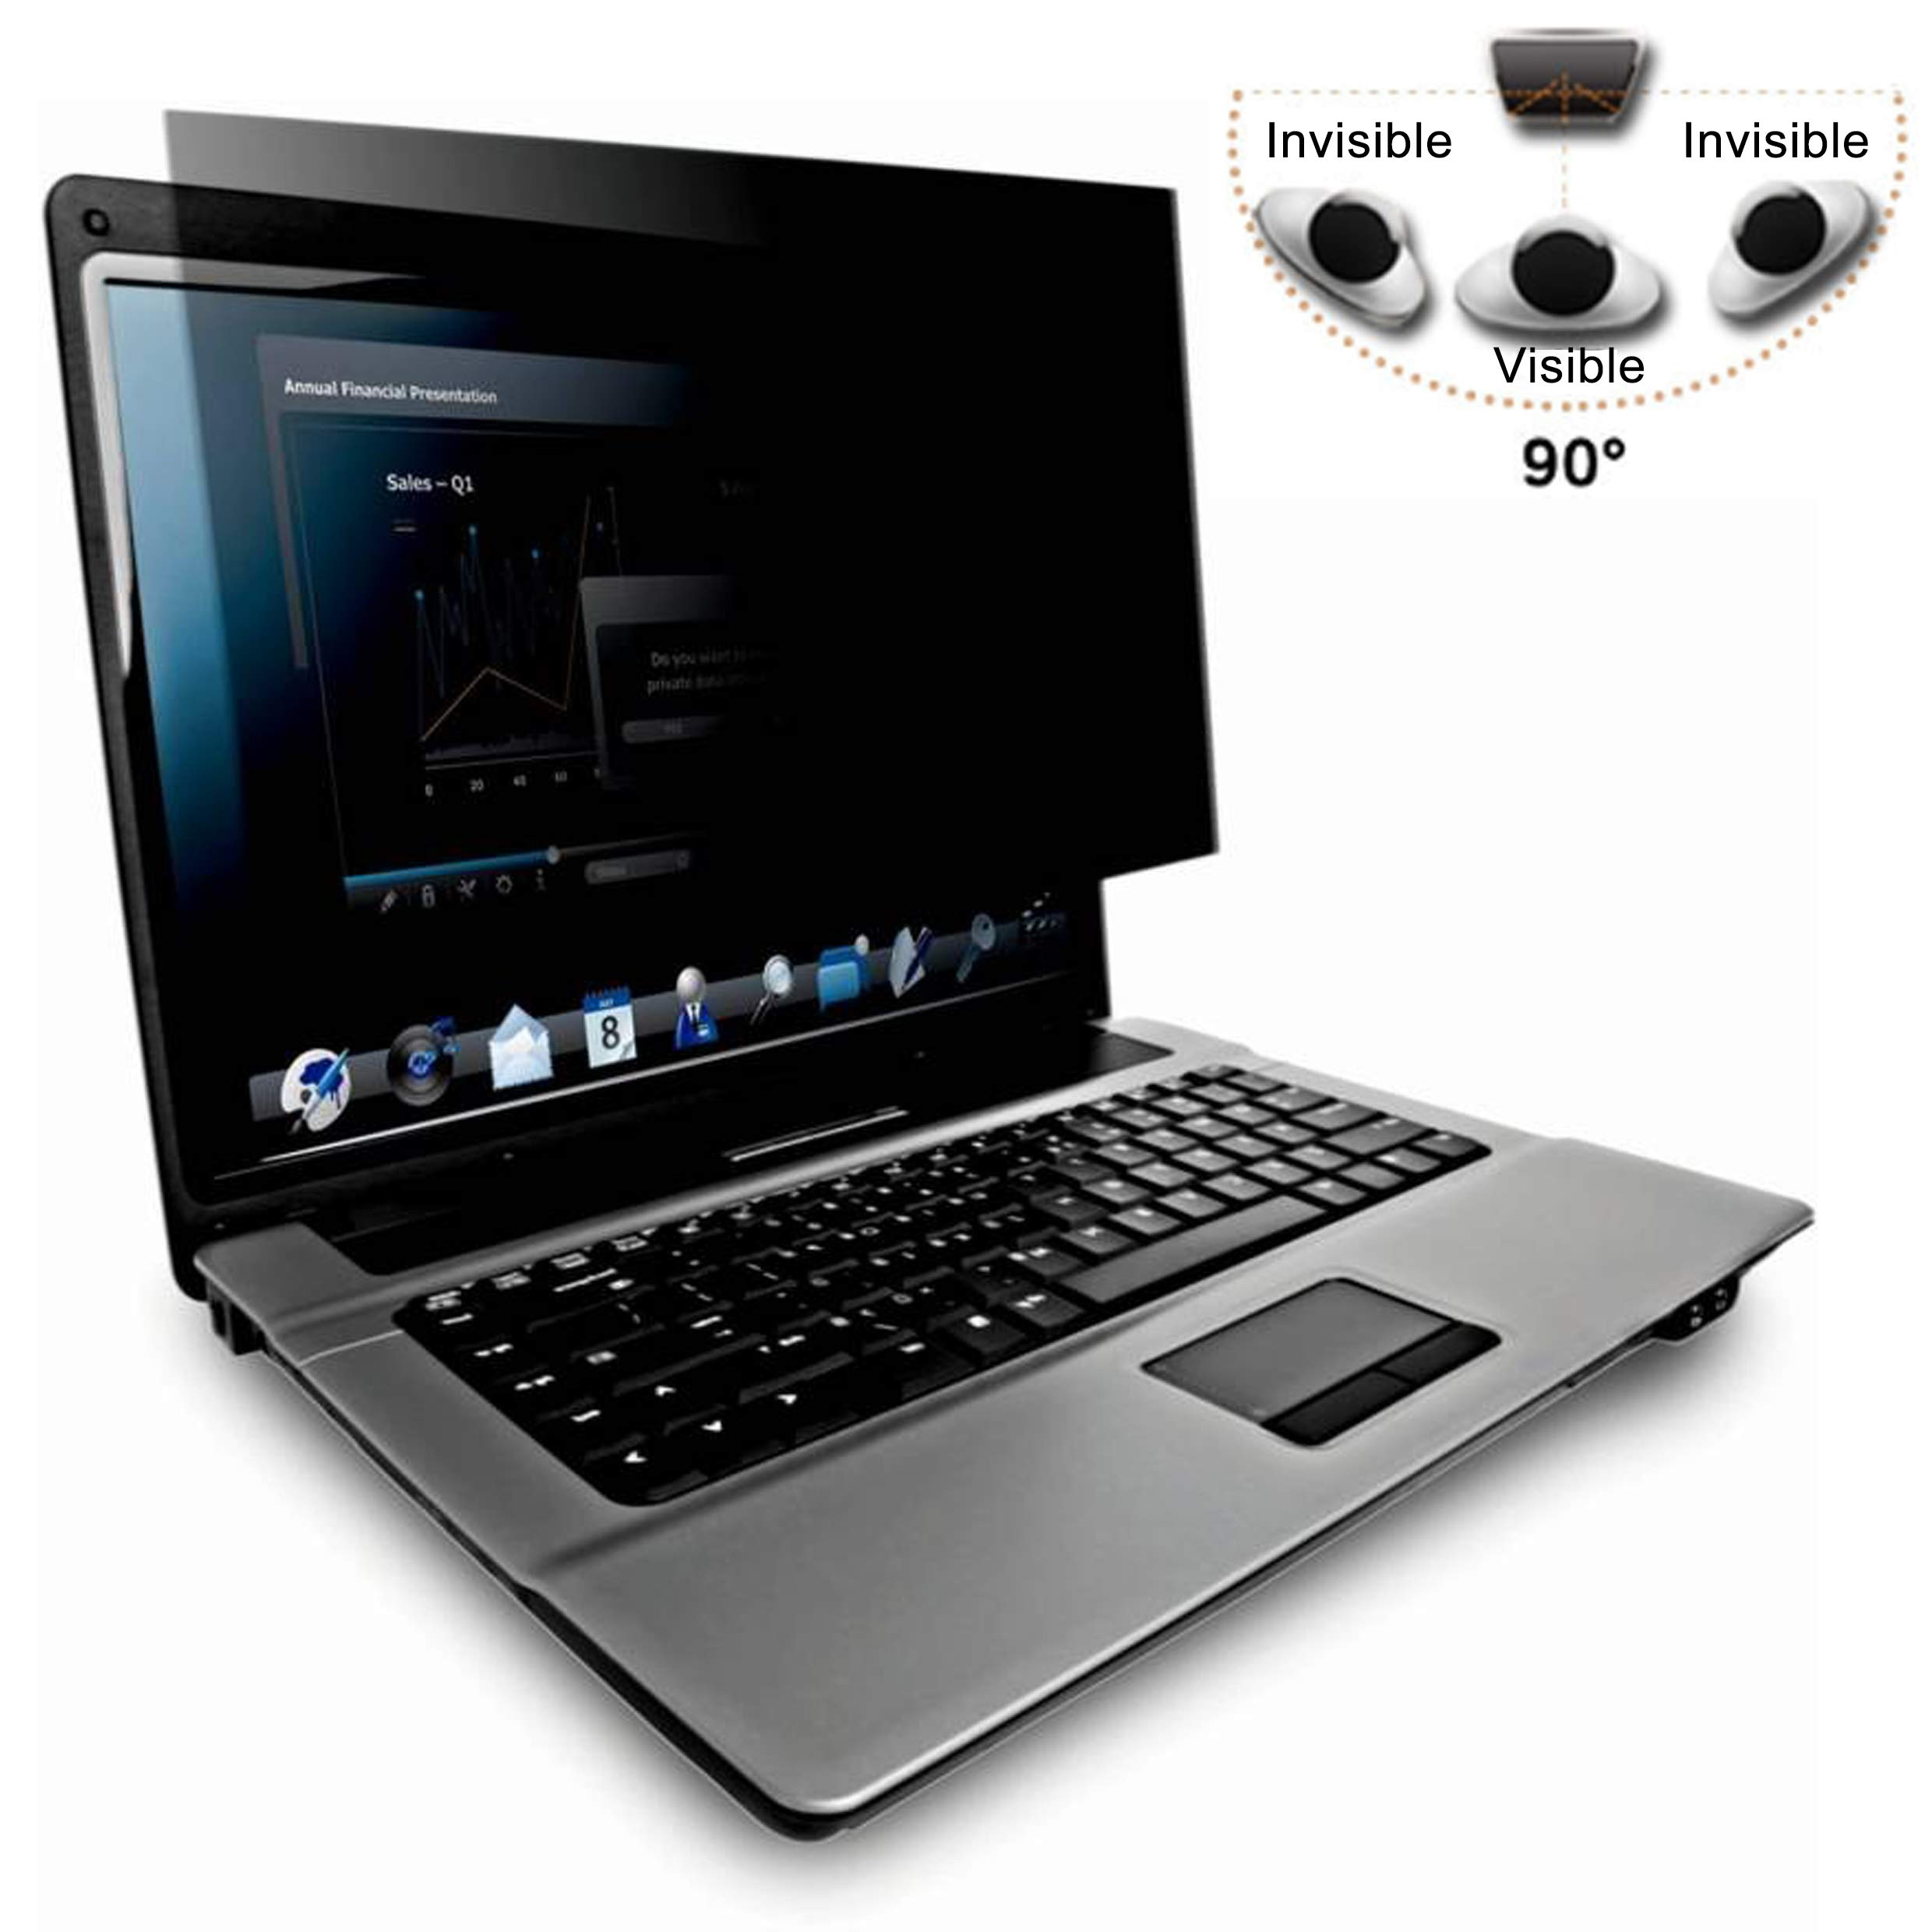 14.0 Inch (Diagonally Measured) Privacy Screen Filter for Widescreen Laptops for Data confidentiality Anti Glare